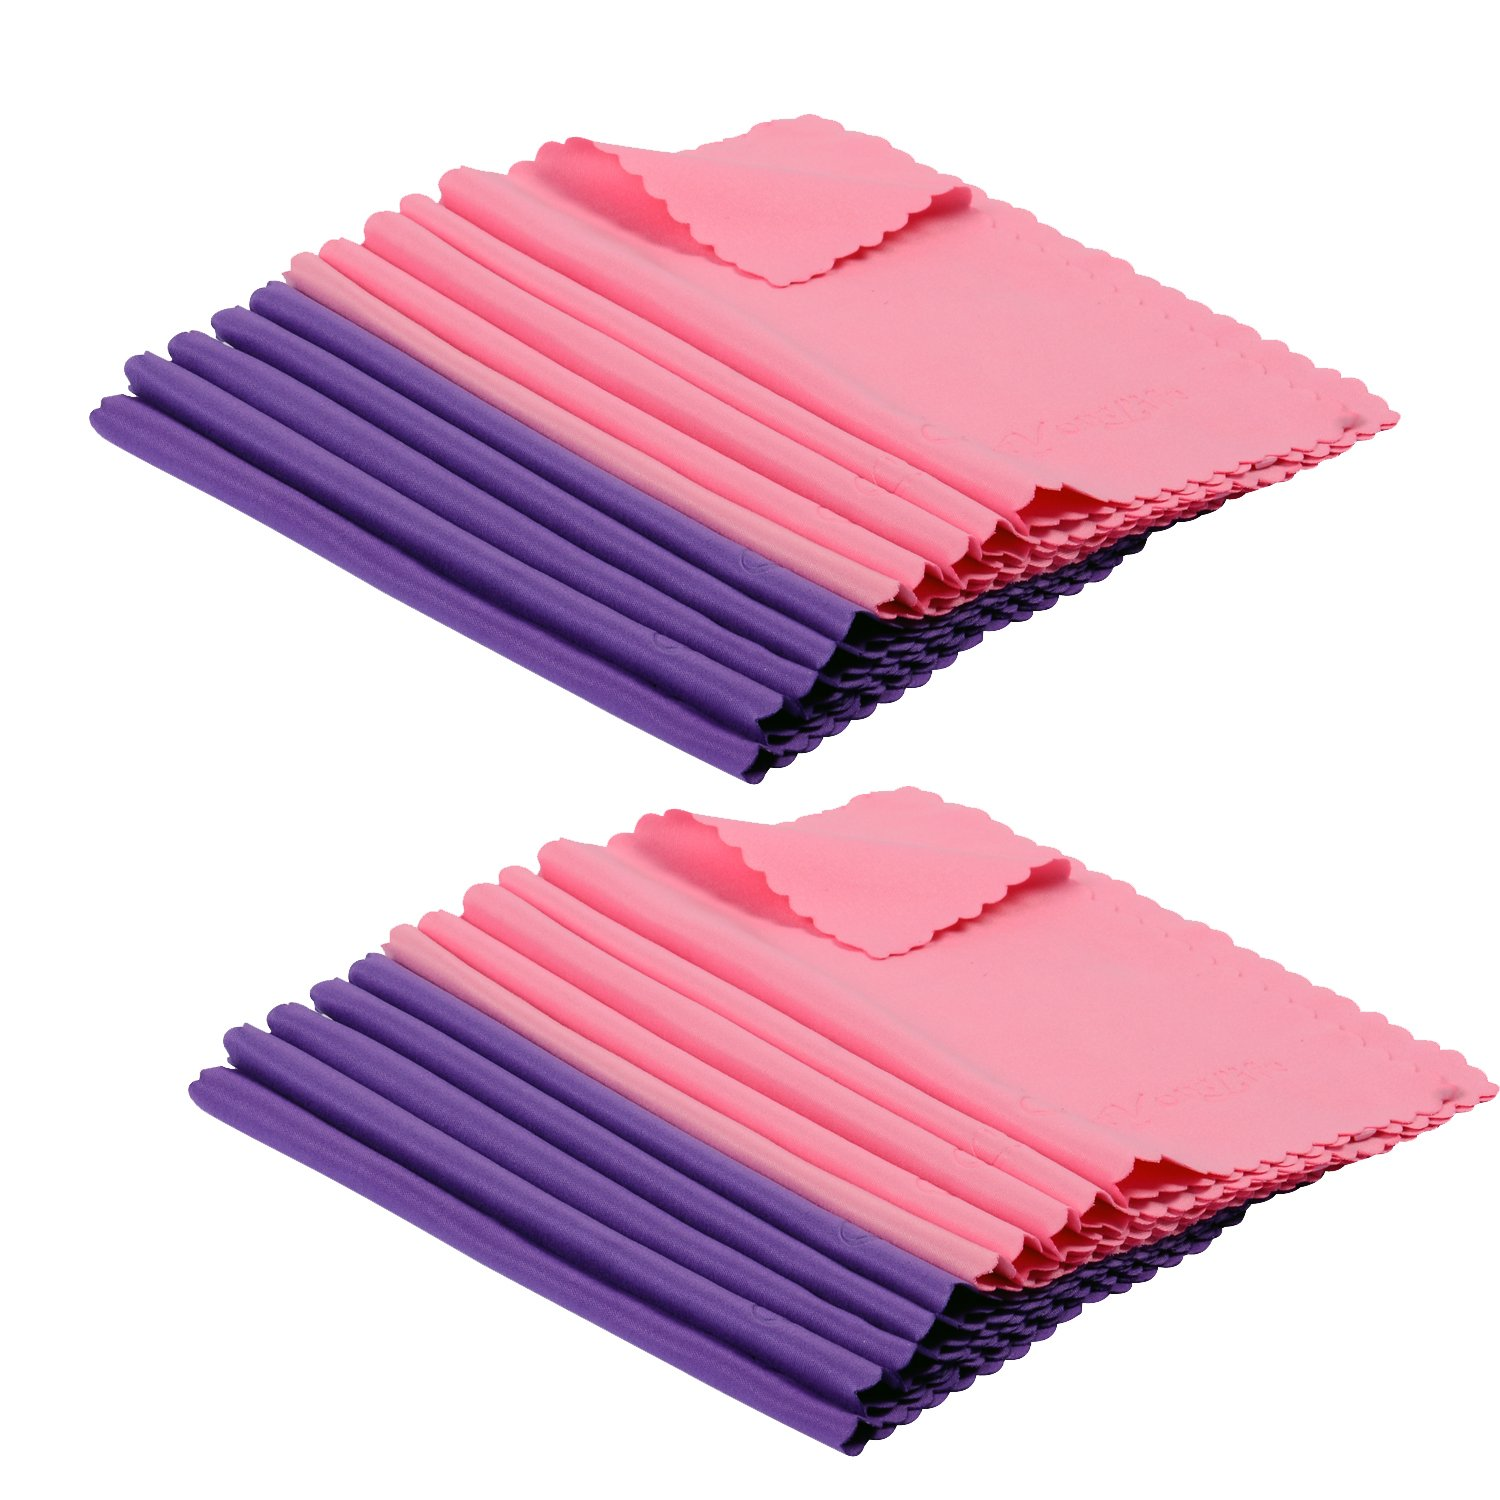 ColorYourLife 20-Pack Microfiber Cleaning Cloths for Apple iPhone ,Ipad, Tablets, Lenses, LCD Monitor, TV, Camera, Glasses, Optics Etc (Purple + Pink) GL-383-AP28A